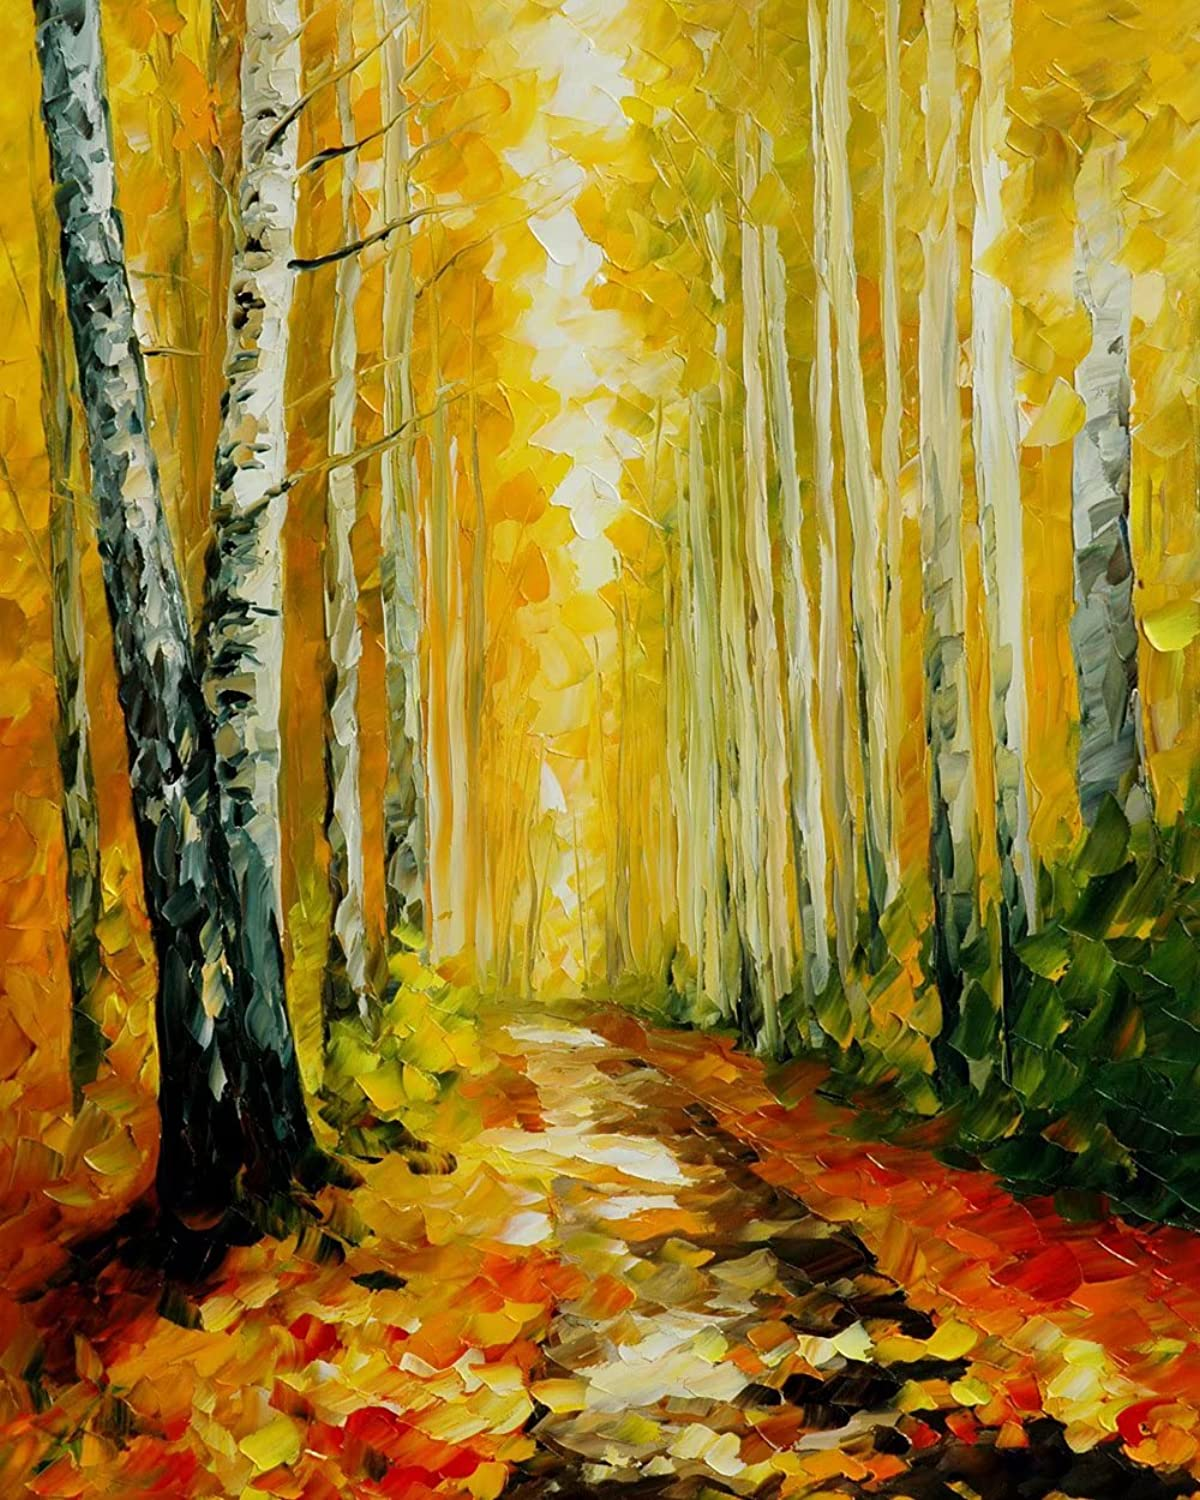 DIY 5D Full Diamond Painting Cross Stitch Autumn Forest Picture With Diamond Embroidered Handmade Rhinestone Crystal Embroidery Mosaic Craft Art Wall Decor